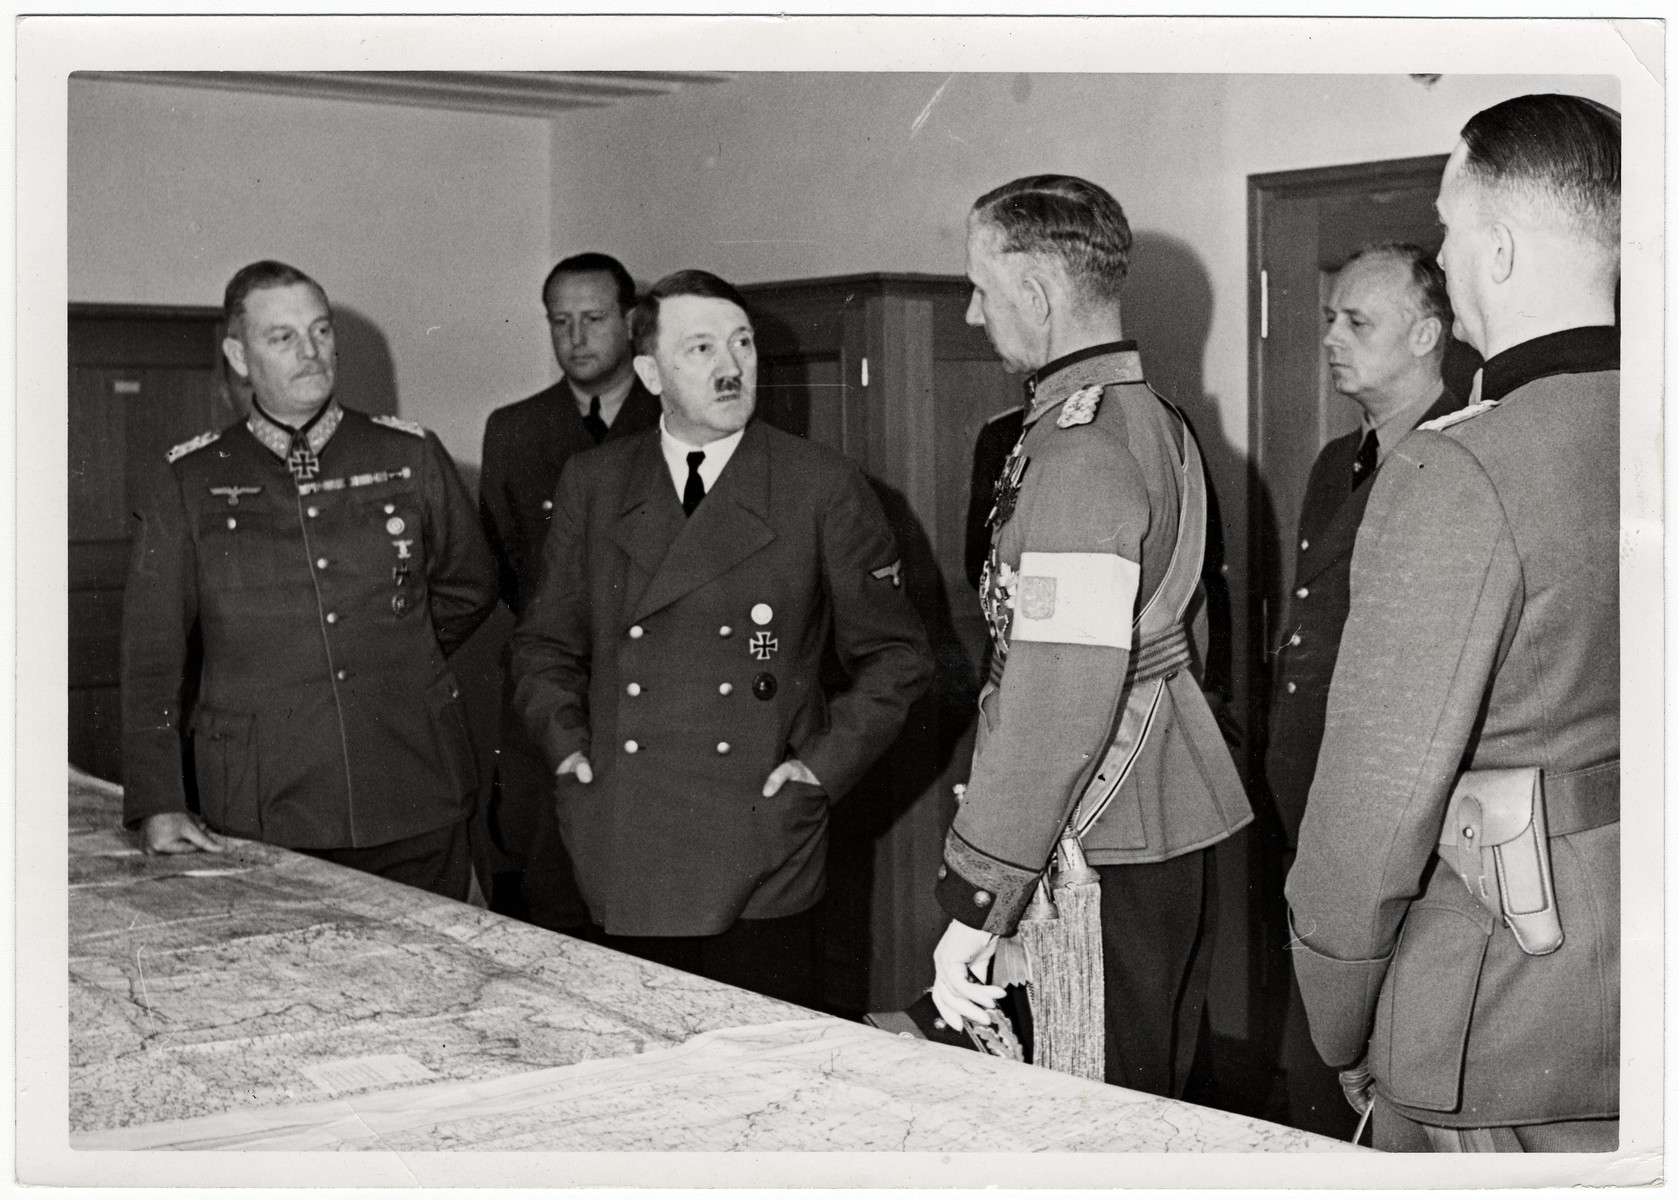 Adolf Hitler meets with several of his key military advisors in the map room of his headquarters.  Pictured with Hitler are General Wilhelm Keitel, Lieutenant General Harald Oehquvist, Joachim von Ribbentrop and General Gerhard Matzky.